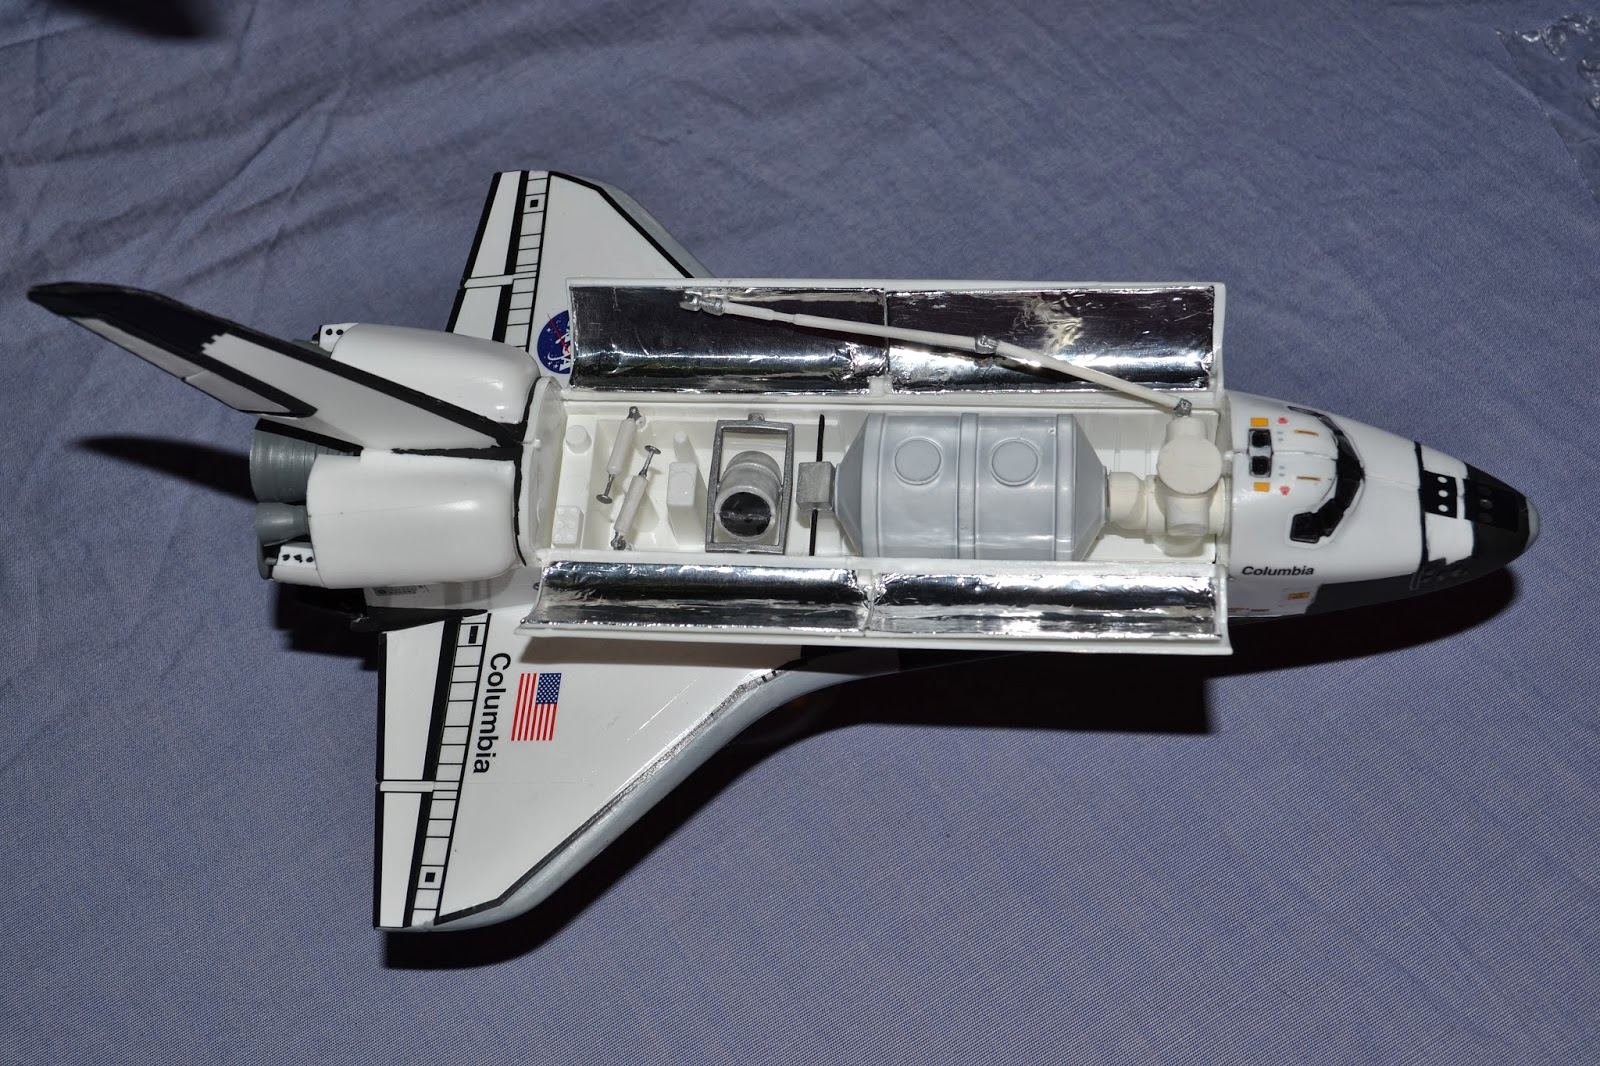 space shuttle model revell - photo #25